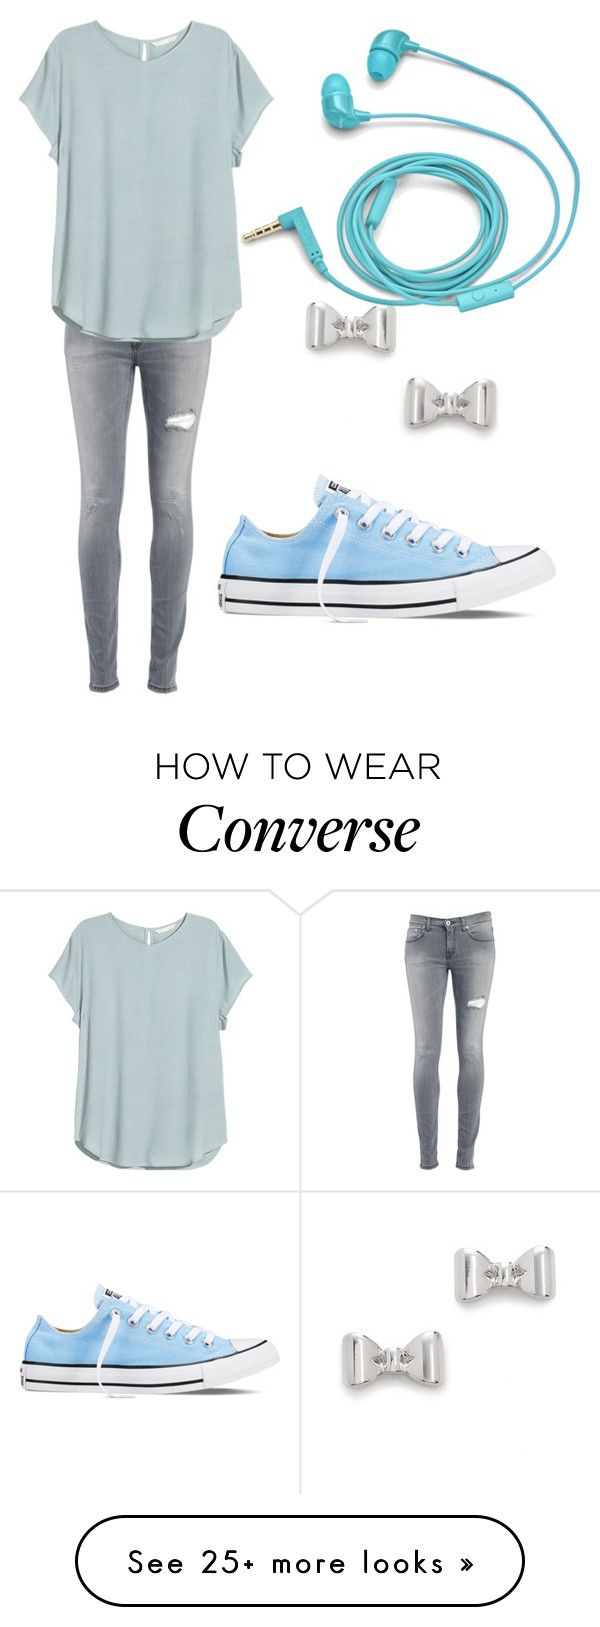 """"" by stoteva on Polyvore featuring Dondup, H&M, Marc by Marc Jacobs, FOSSIL, Converse, women's clothing, women's fashion, women, female and woman"